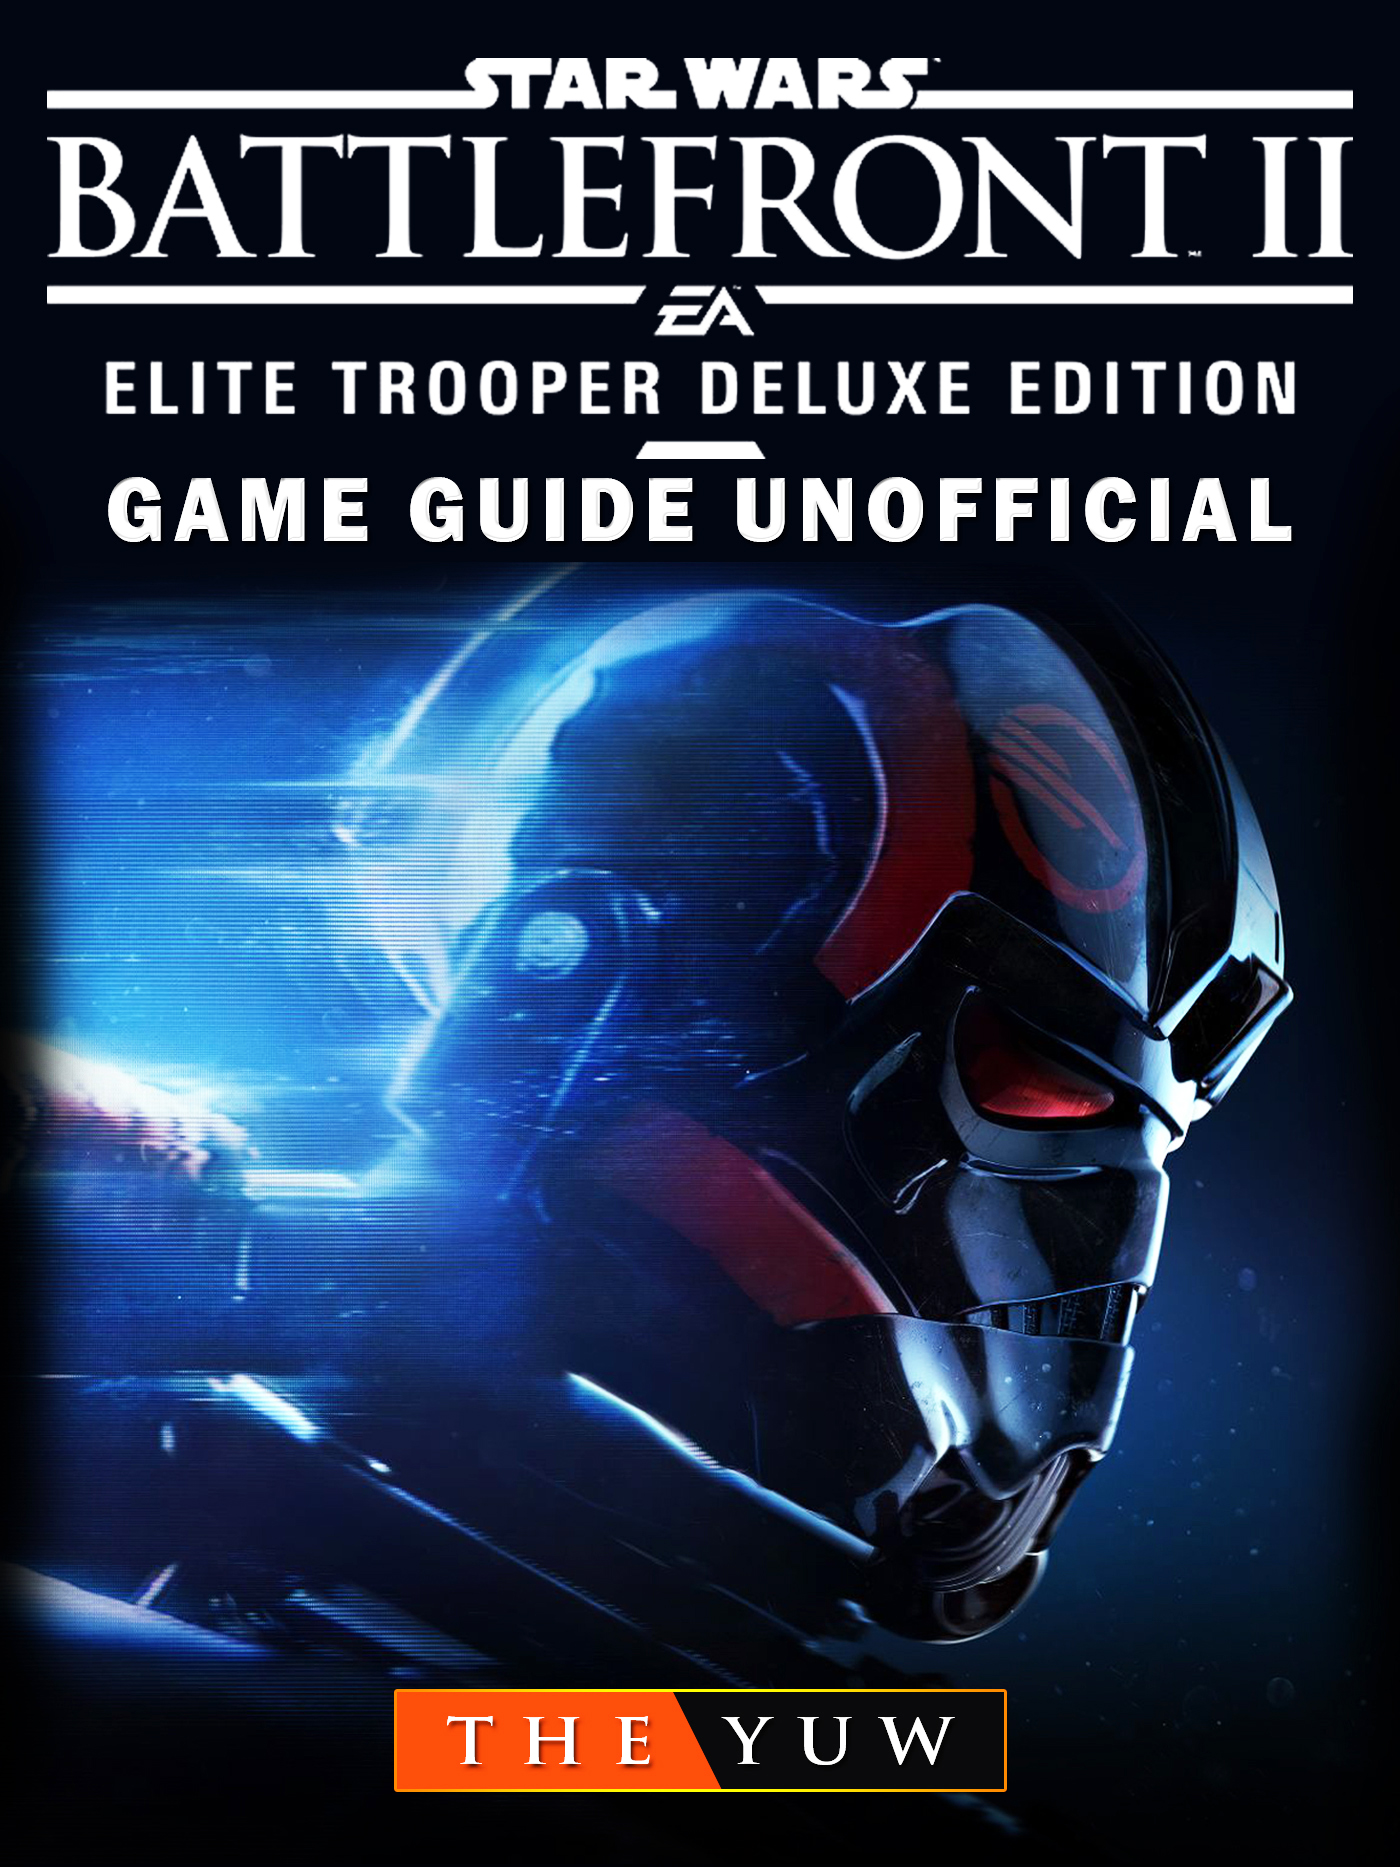 Star Wars Battlefront II Elite Trooper Deluxe Edition Game Guide Unofficial By Hse Guides